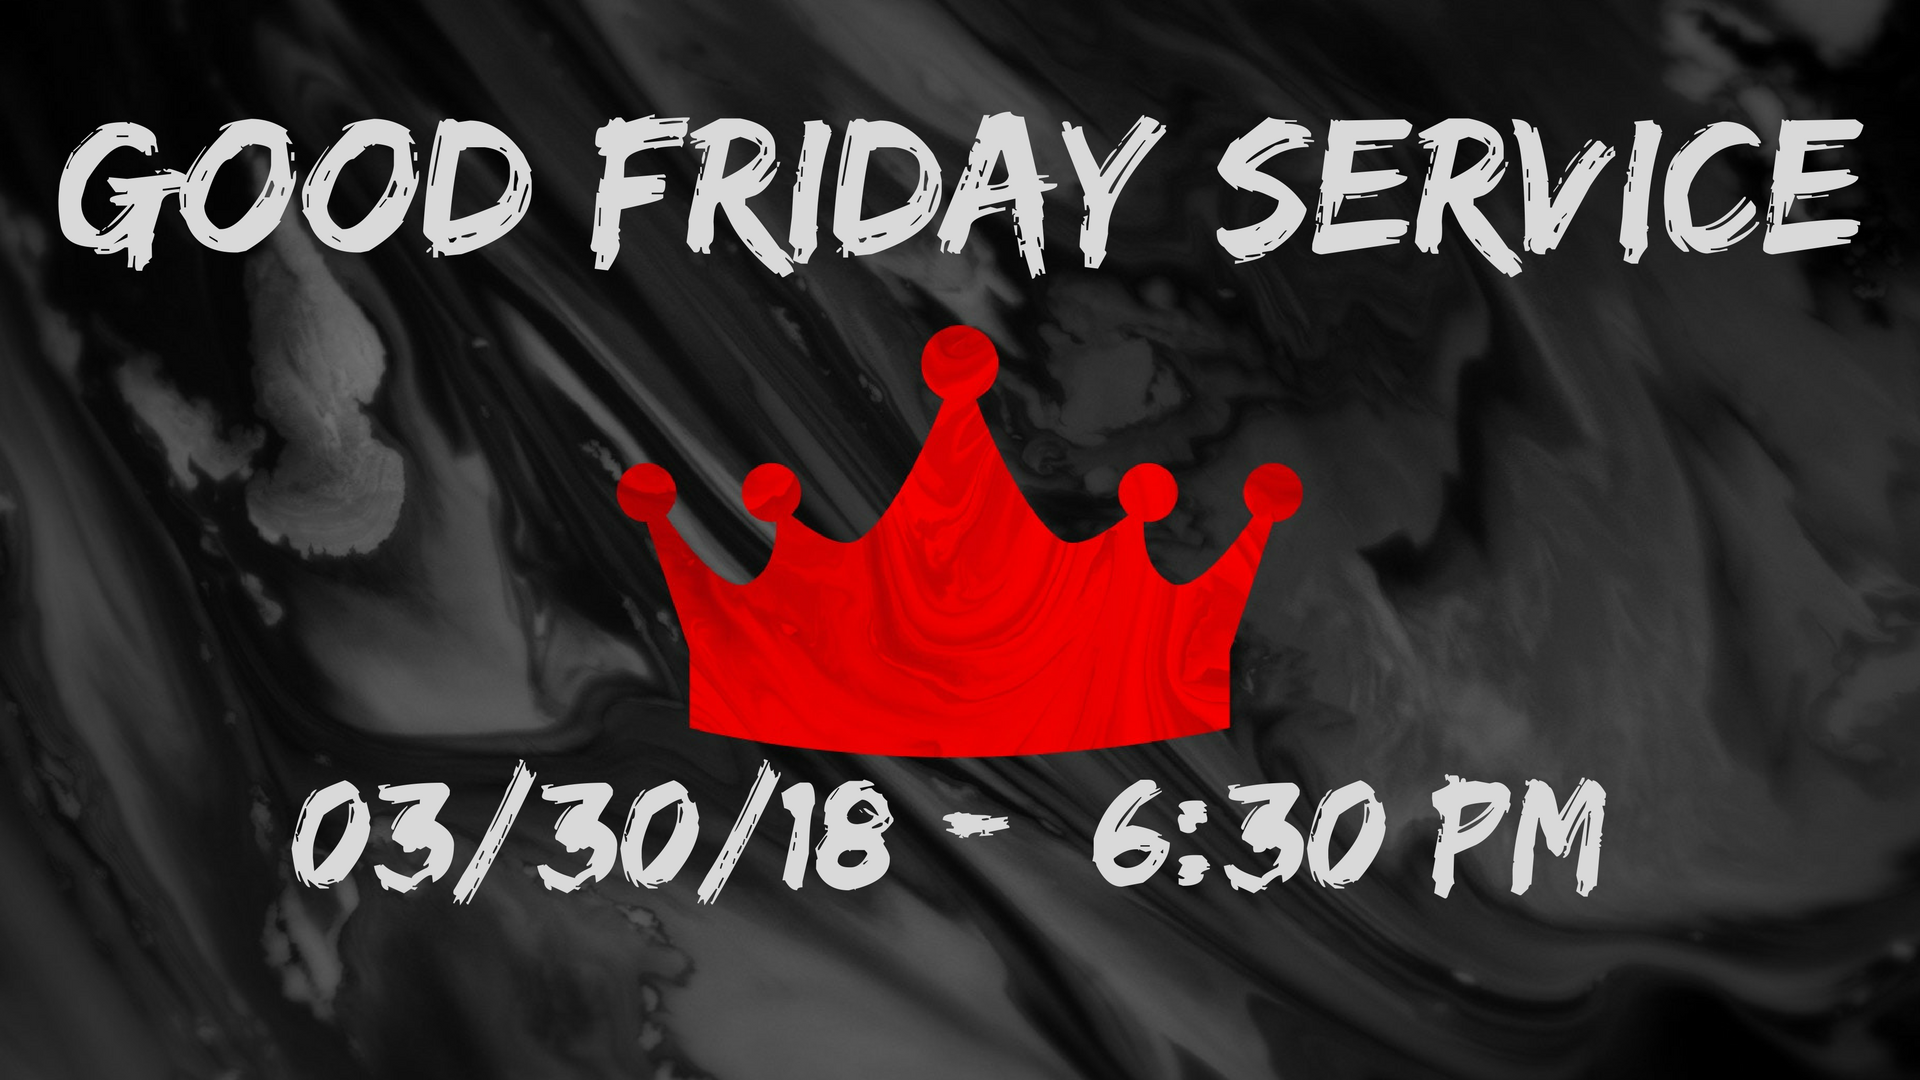 Copy of Good Friday Service.png